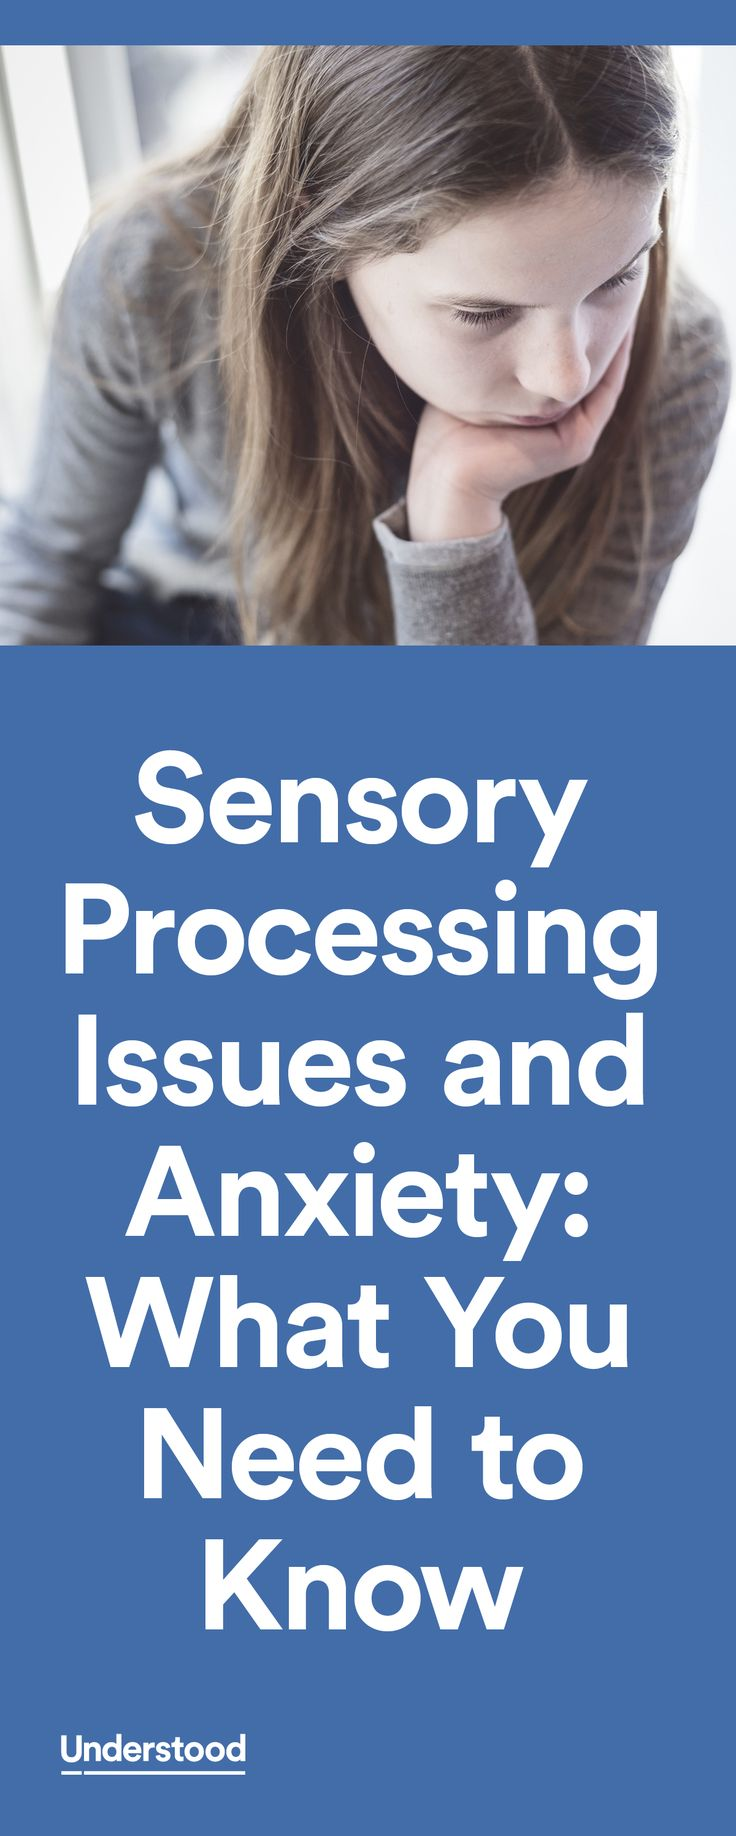 Bright lights, loud noises, unfamiliar surroundings and situations. All of these can create stress—and sensory overload—for kids with sensory processing issues. It can also create anxiety over situations that lie ahead.